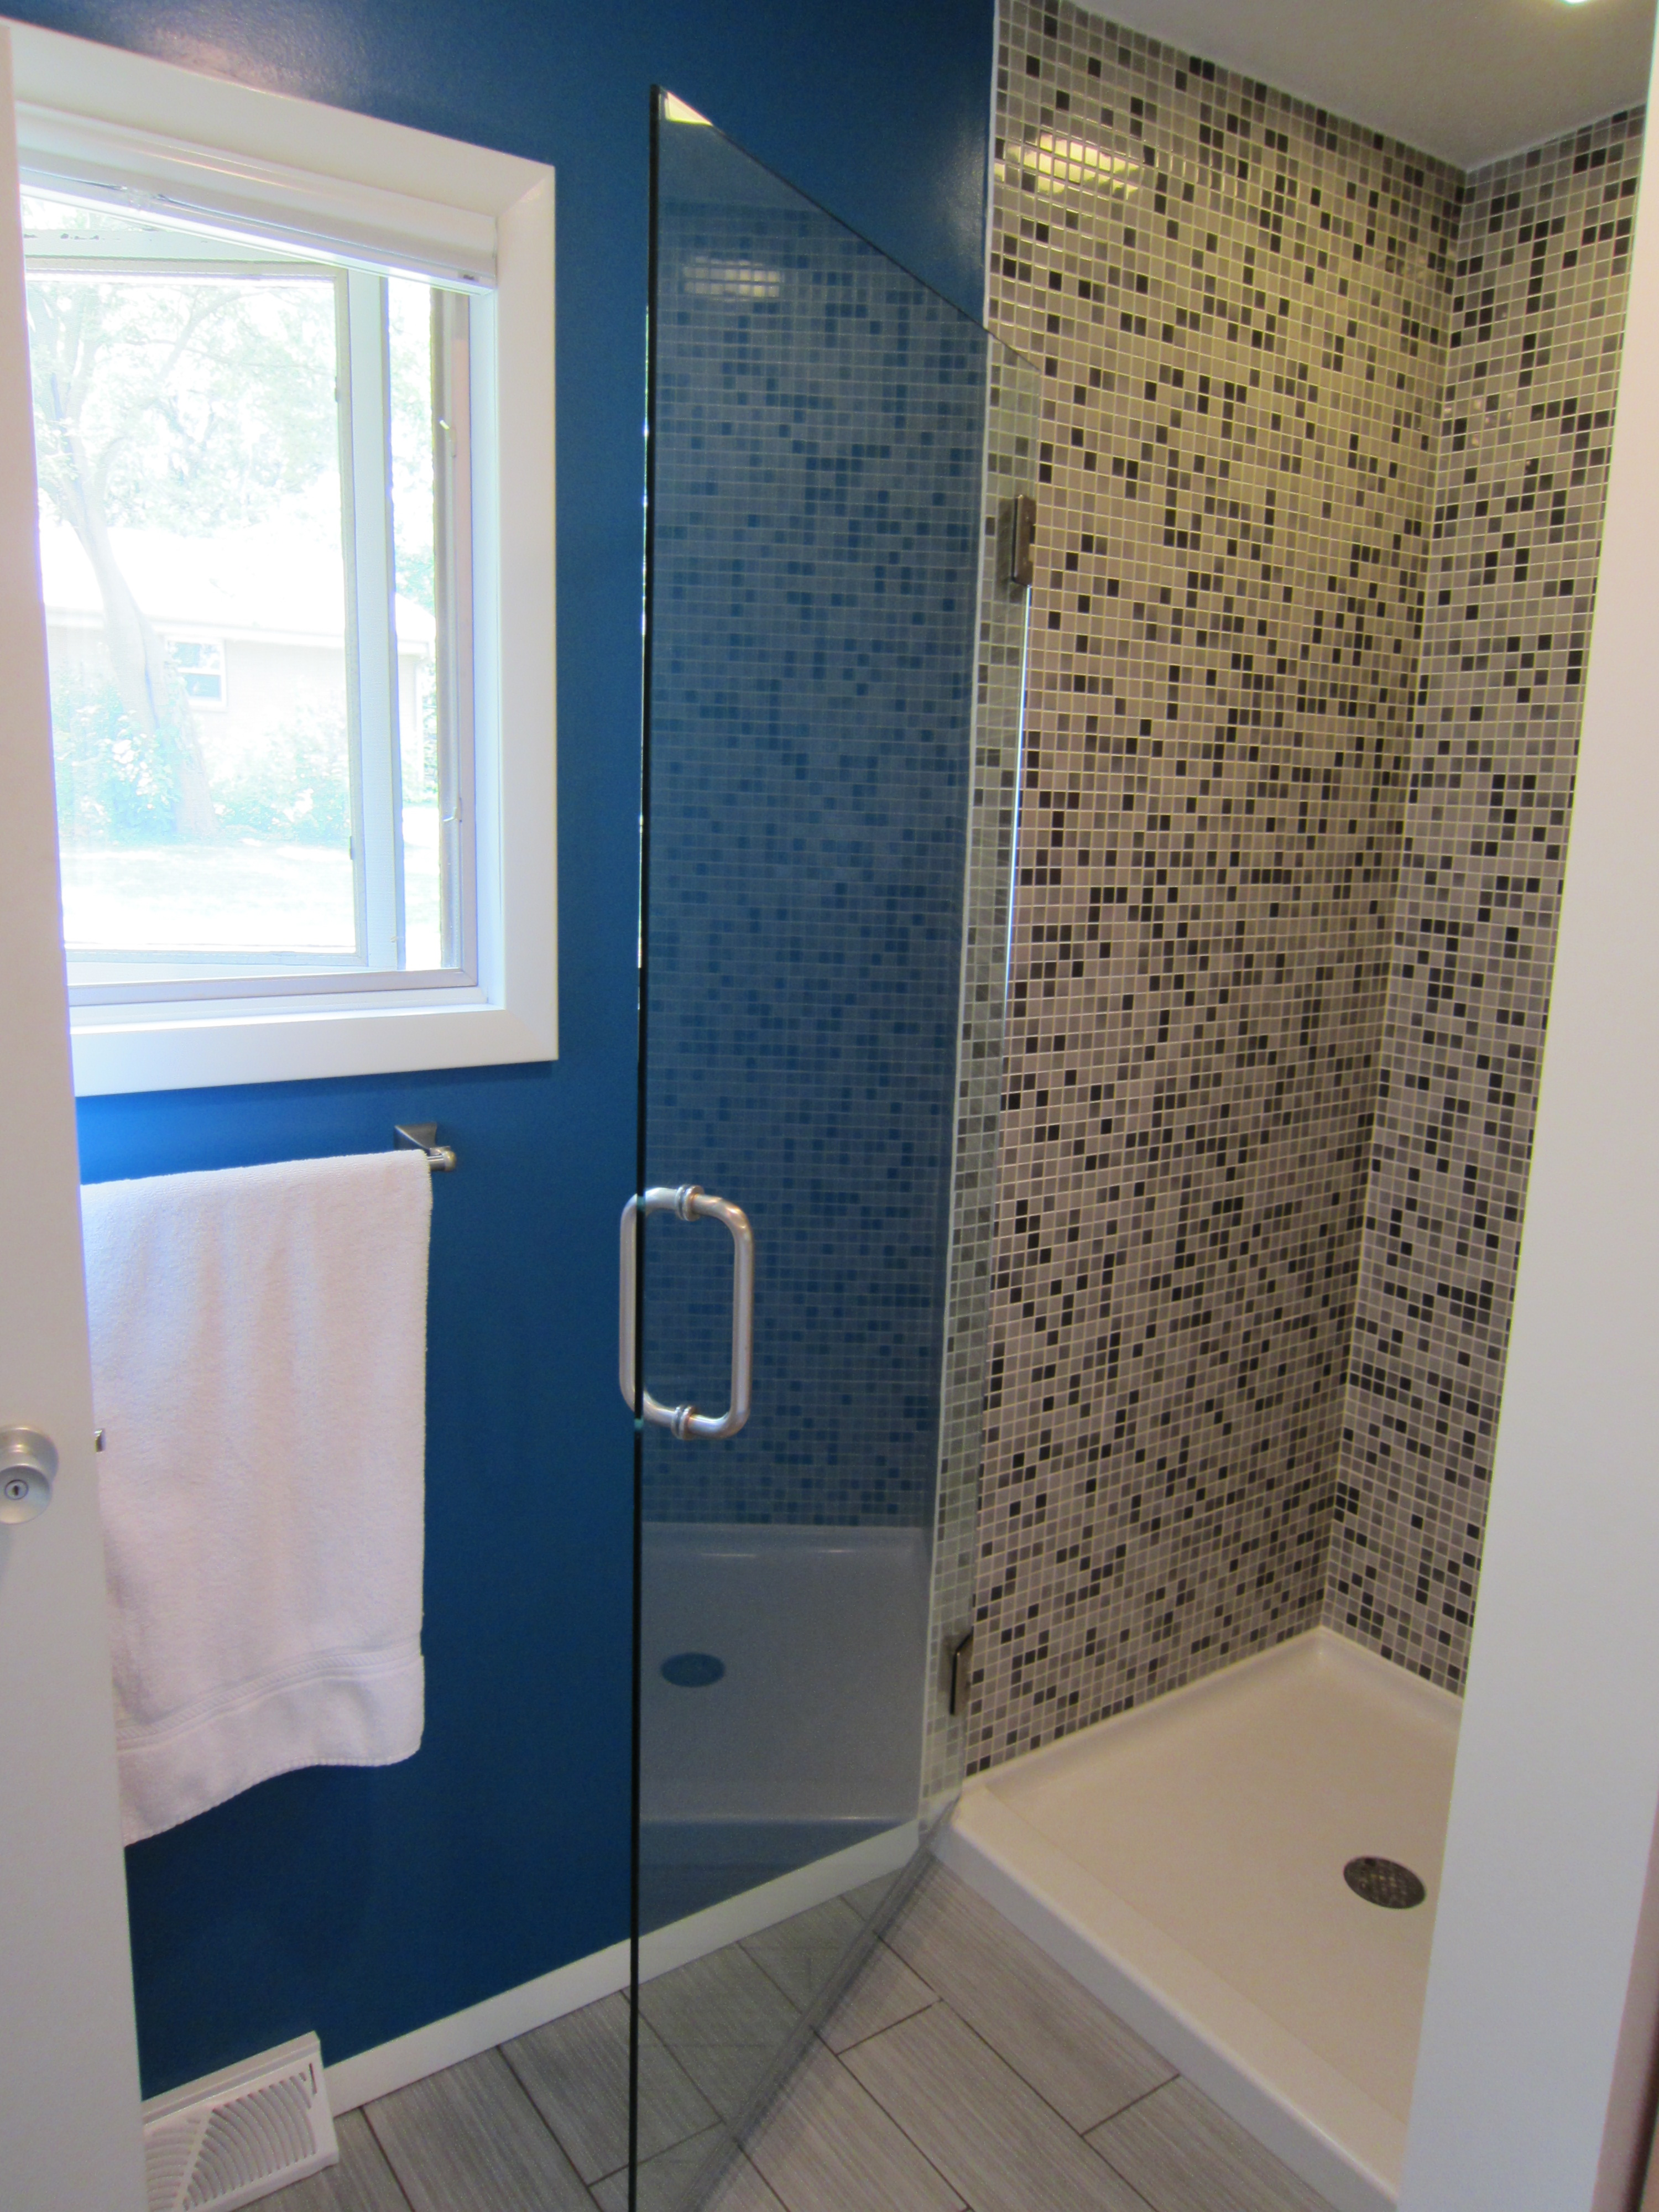 Complete Bathroom Renovation: 12 Steps (with Pictures)